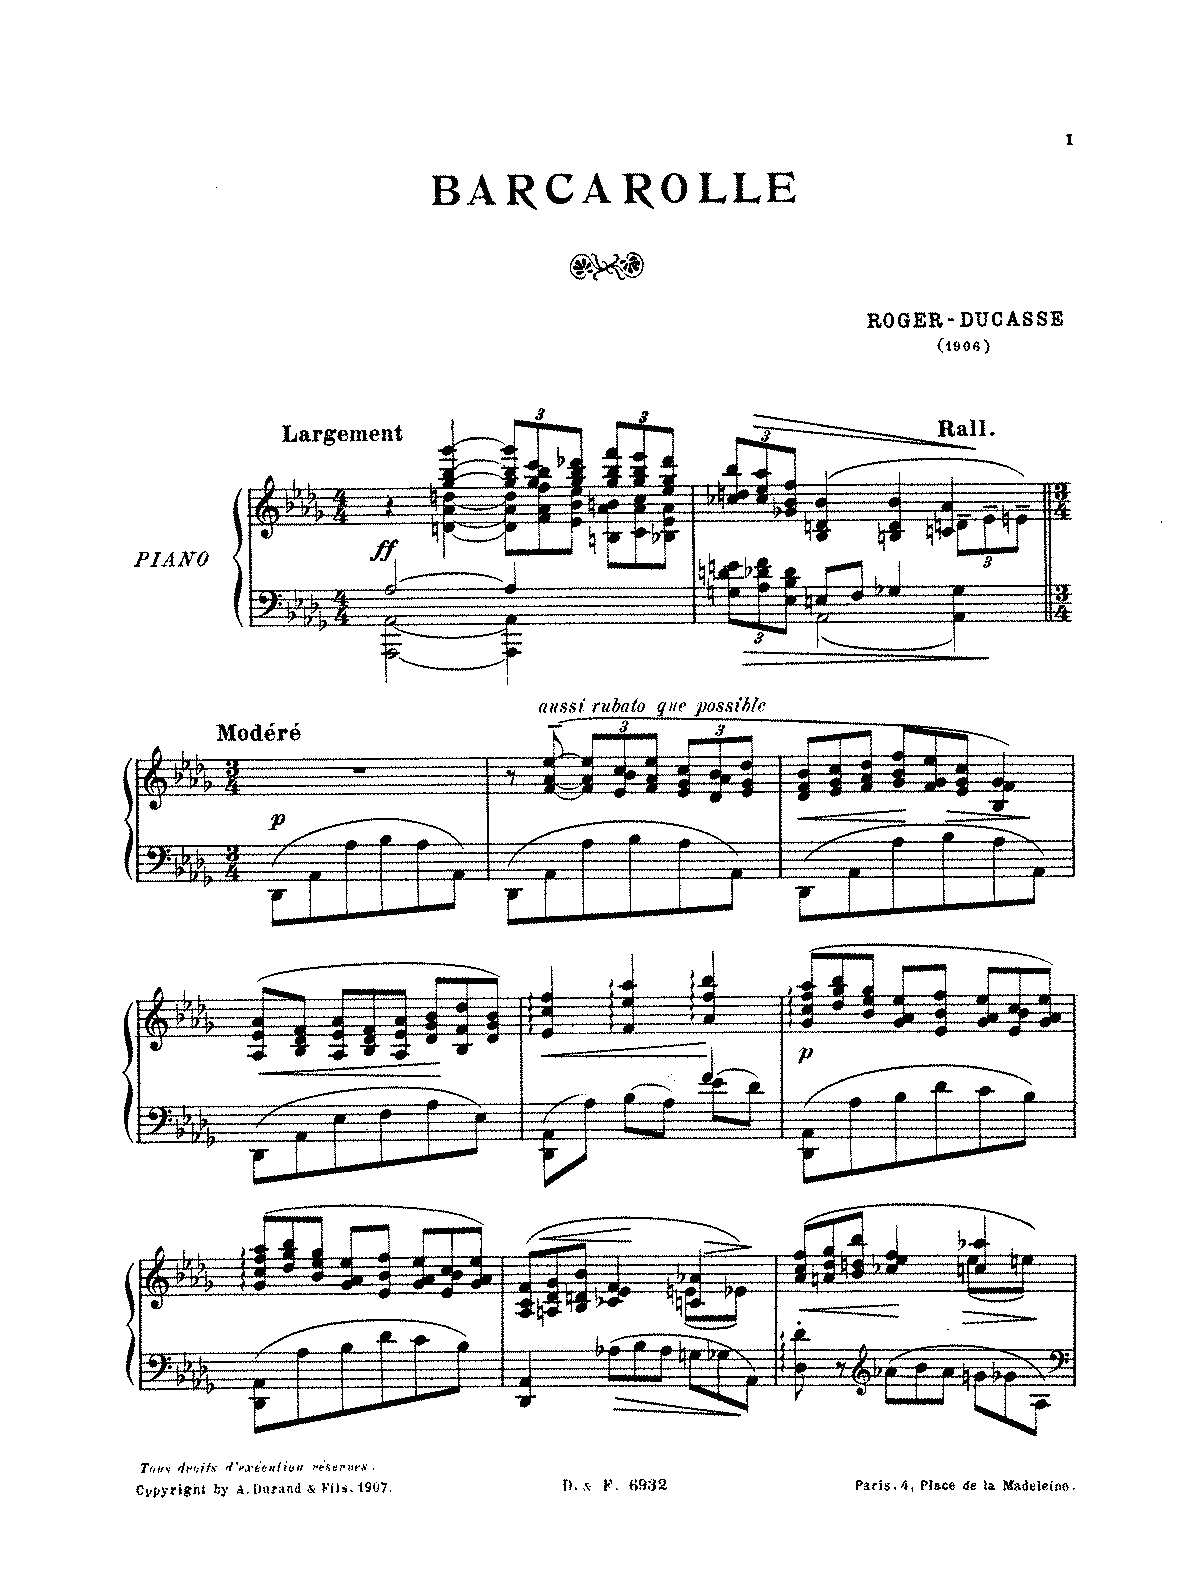 Roger-Ducasse - Barcarolle (piano).pdf